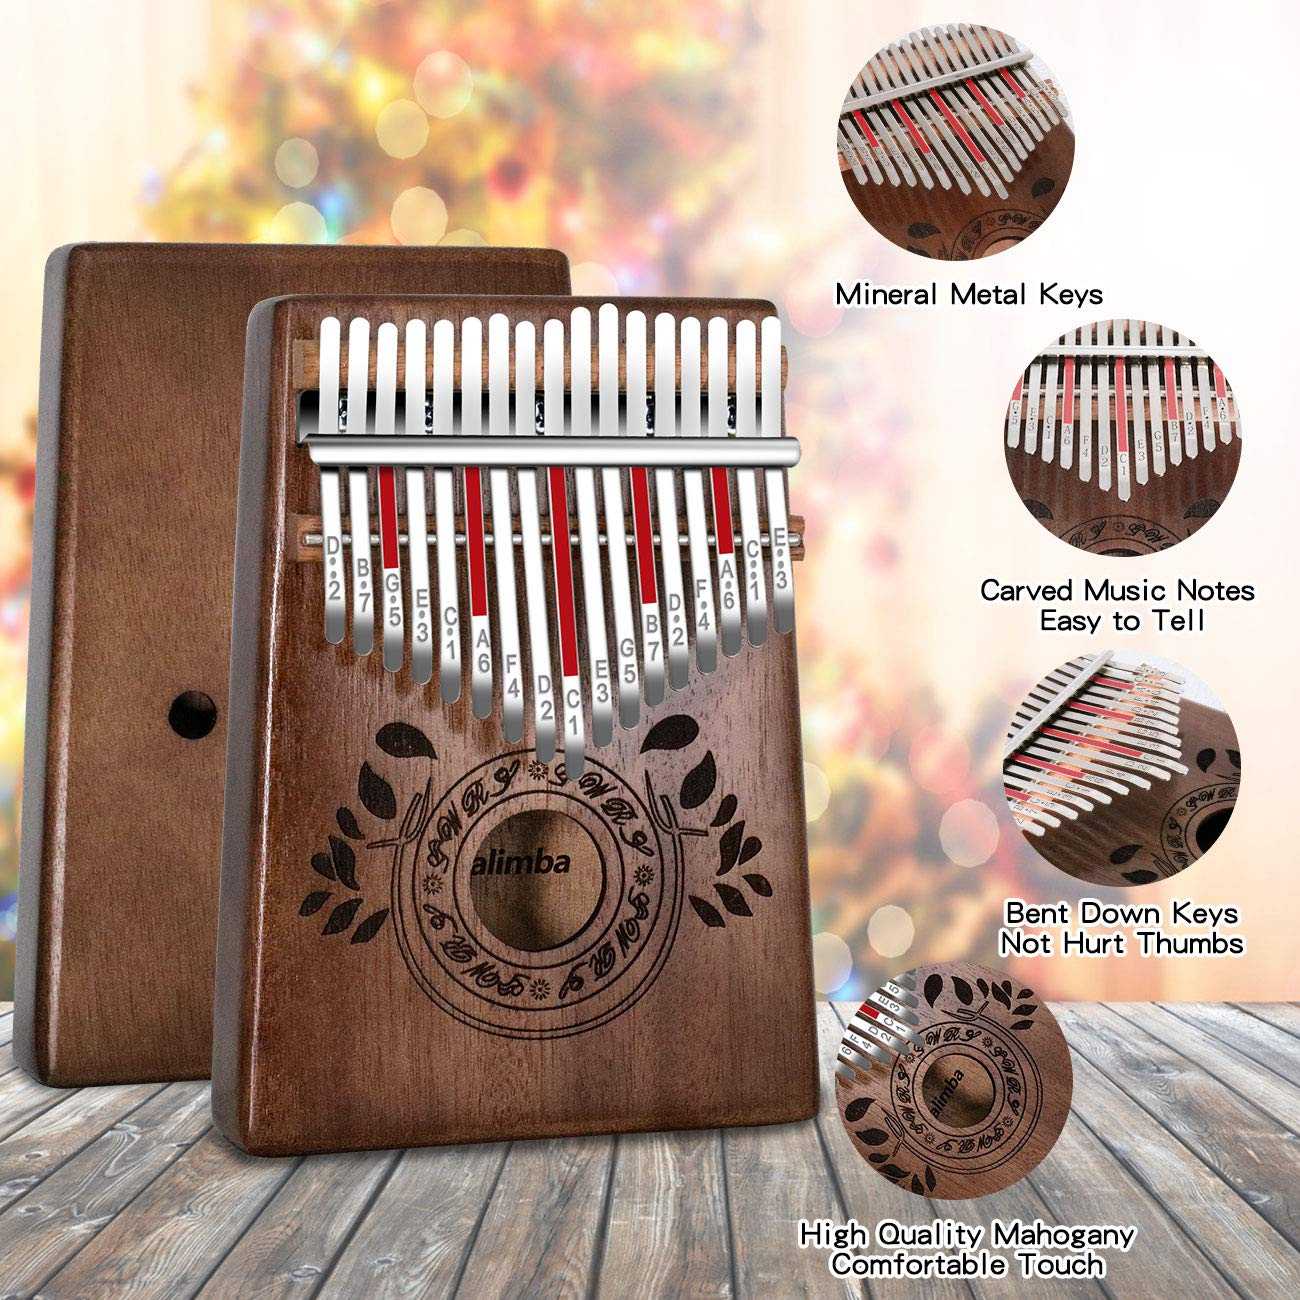 UNOKKI Kalimba 17 Keys Thumb Piano with Study Instruction and Tune Hammer, Portable Solid African Wood Finger Piano, Gift for Kids Adult Beginners (Chocolate Brown). by UNOKKI (Image #2)